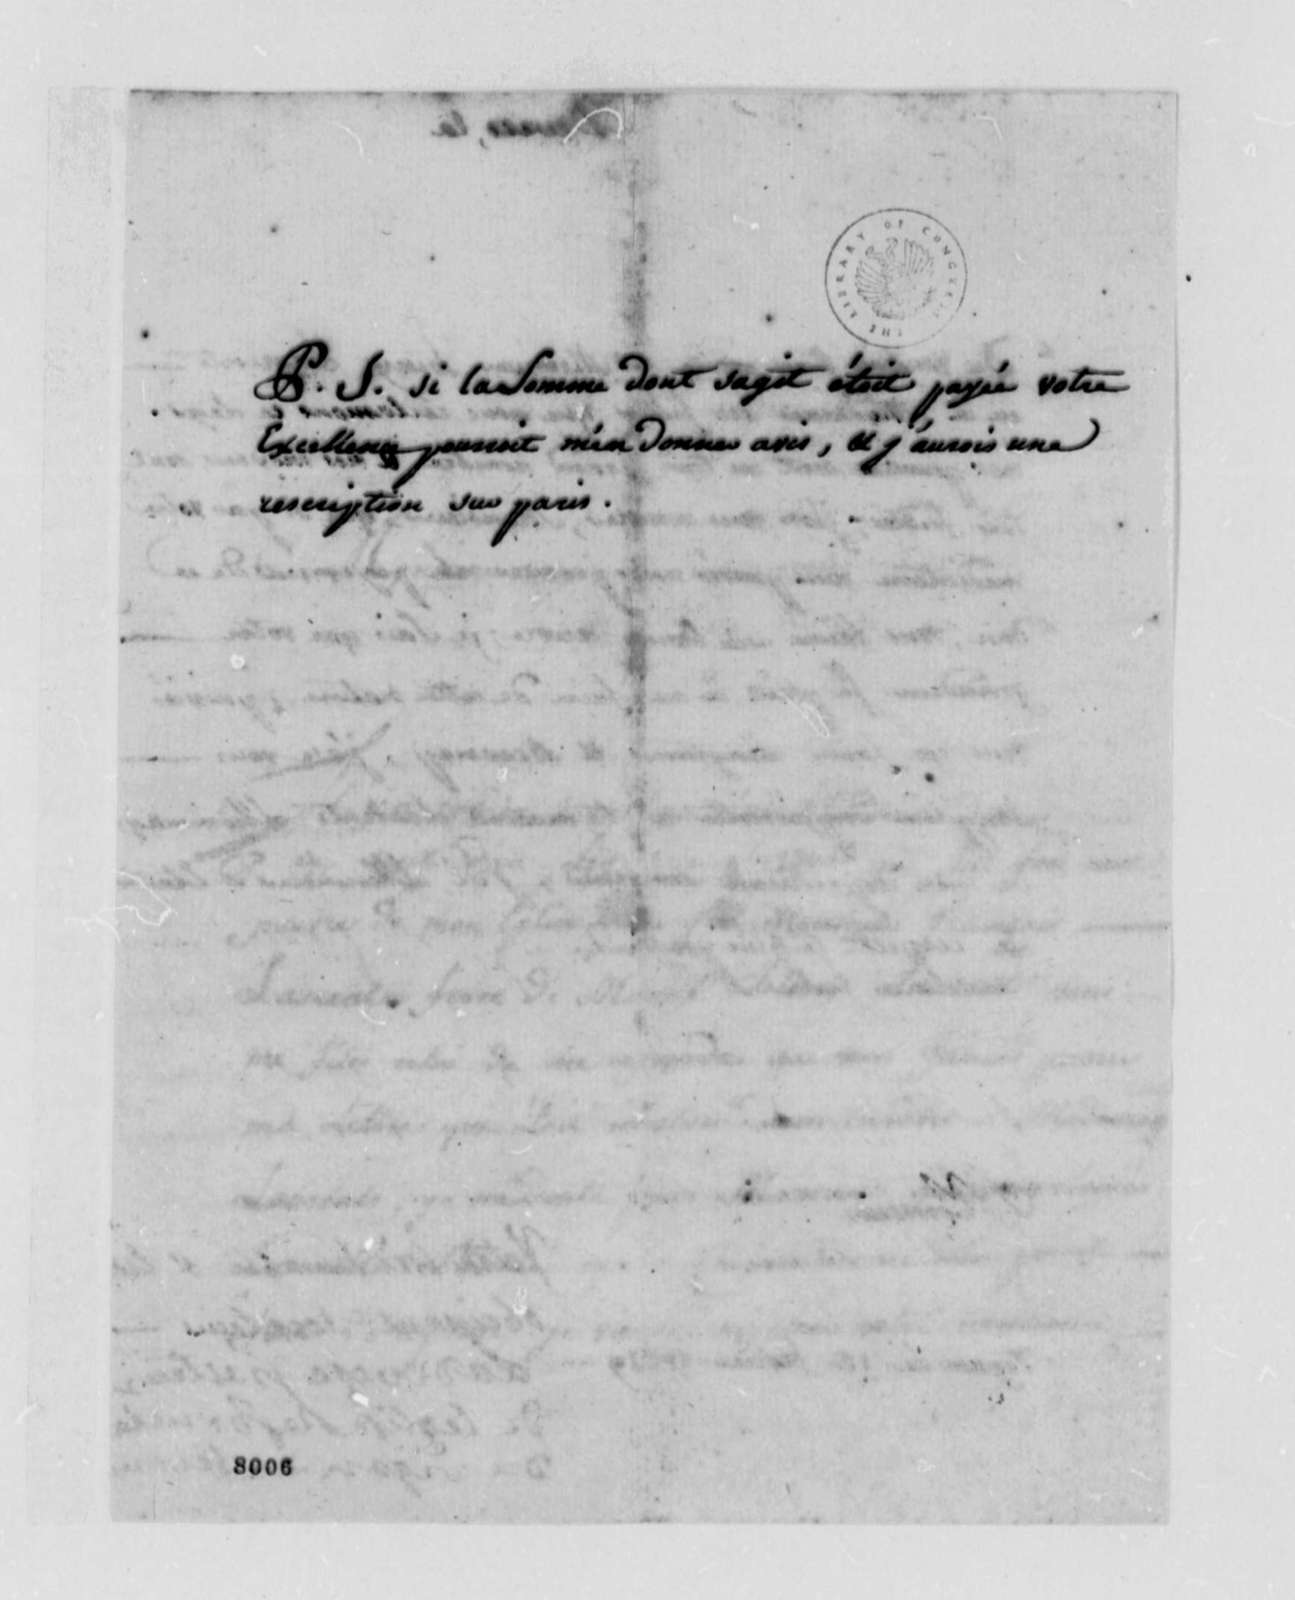 Ladevese to Thomas Jefferson, February 18, 1789, in French